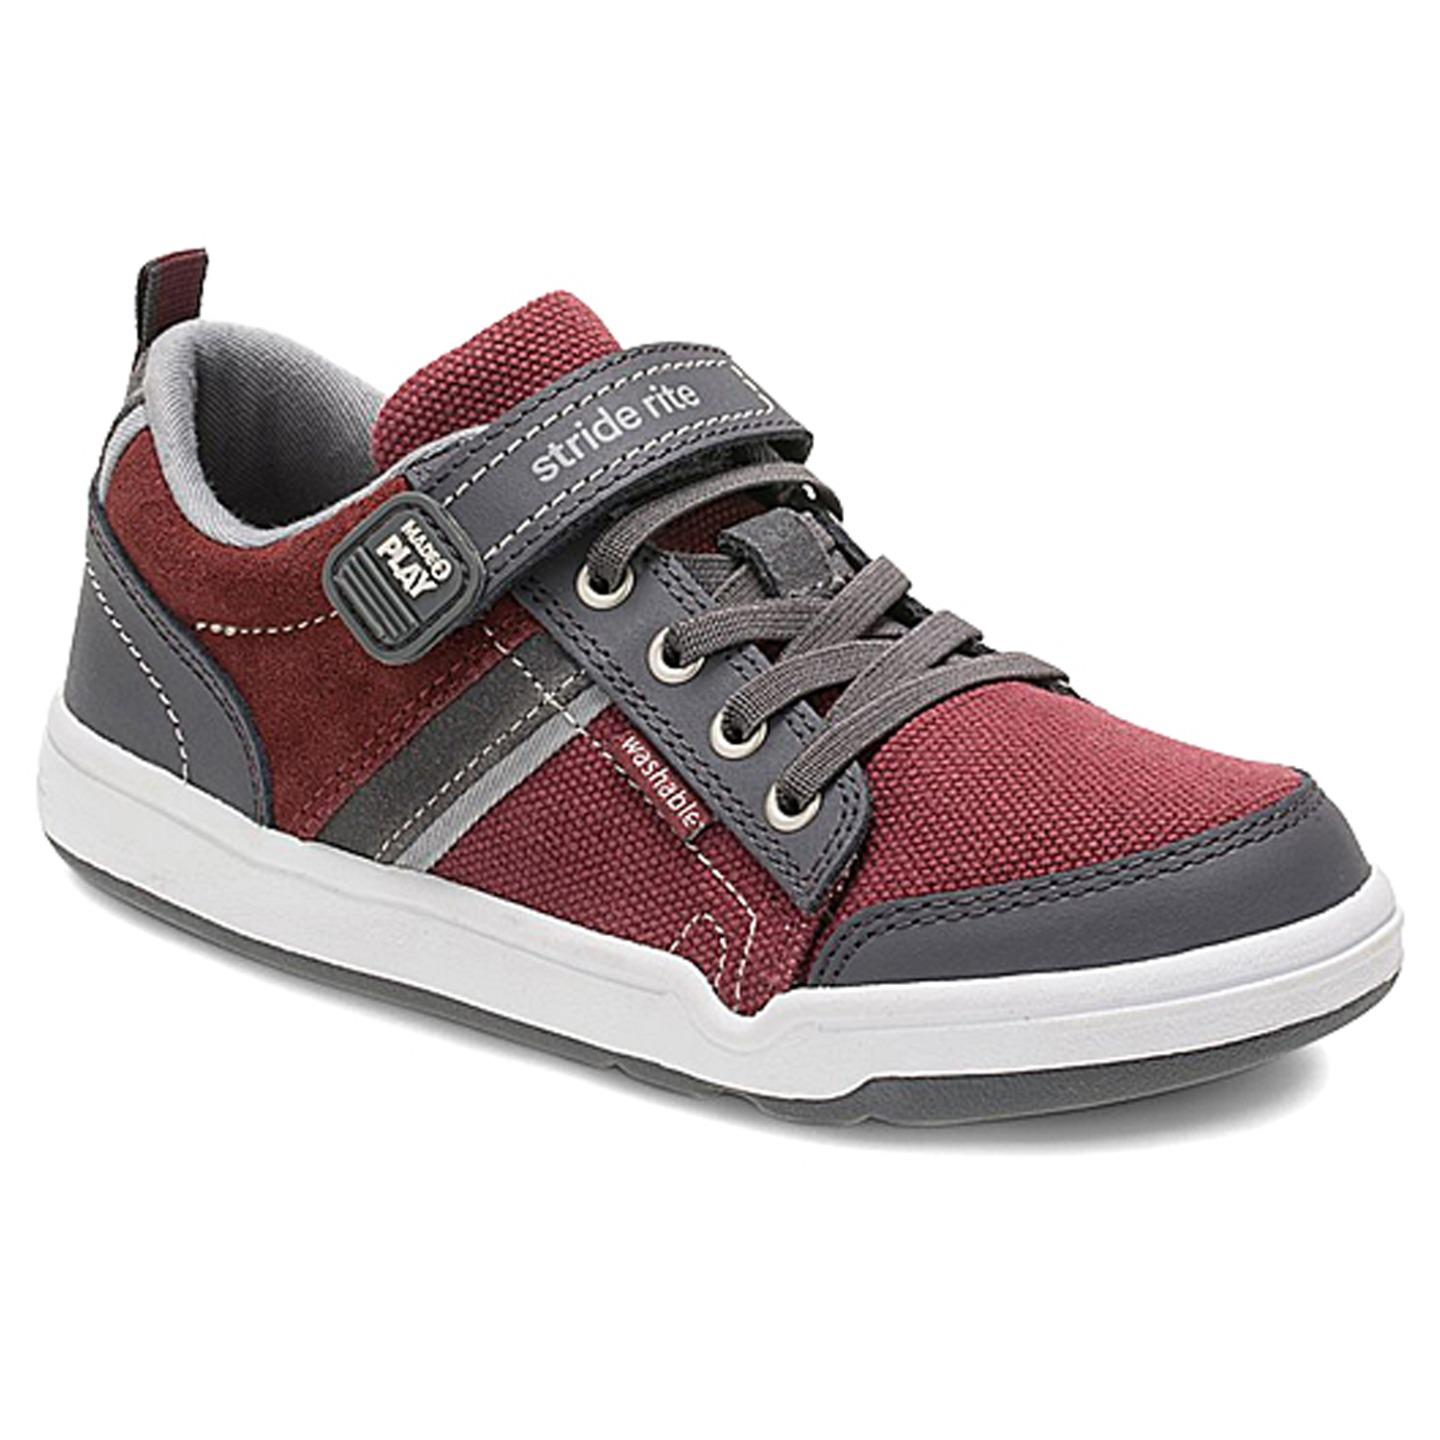 Stride Rite Boys' Made 2 Play Kaleb Sneaker, Oxblood, 11.5 M Little Kid by Stride Rite